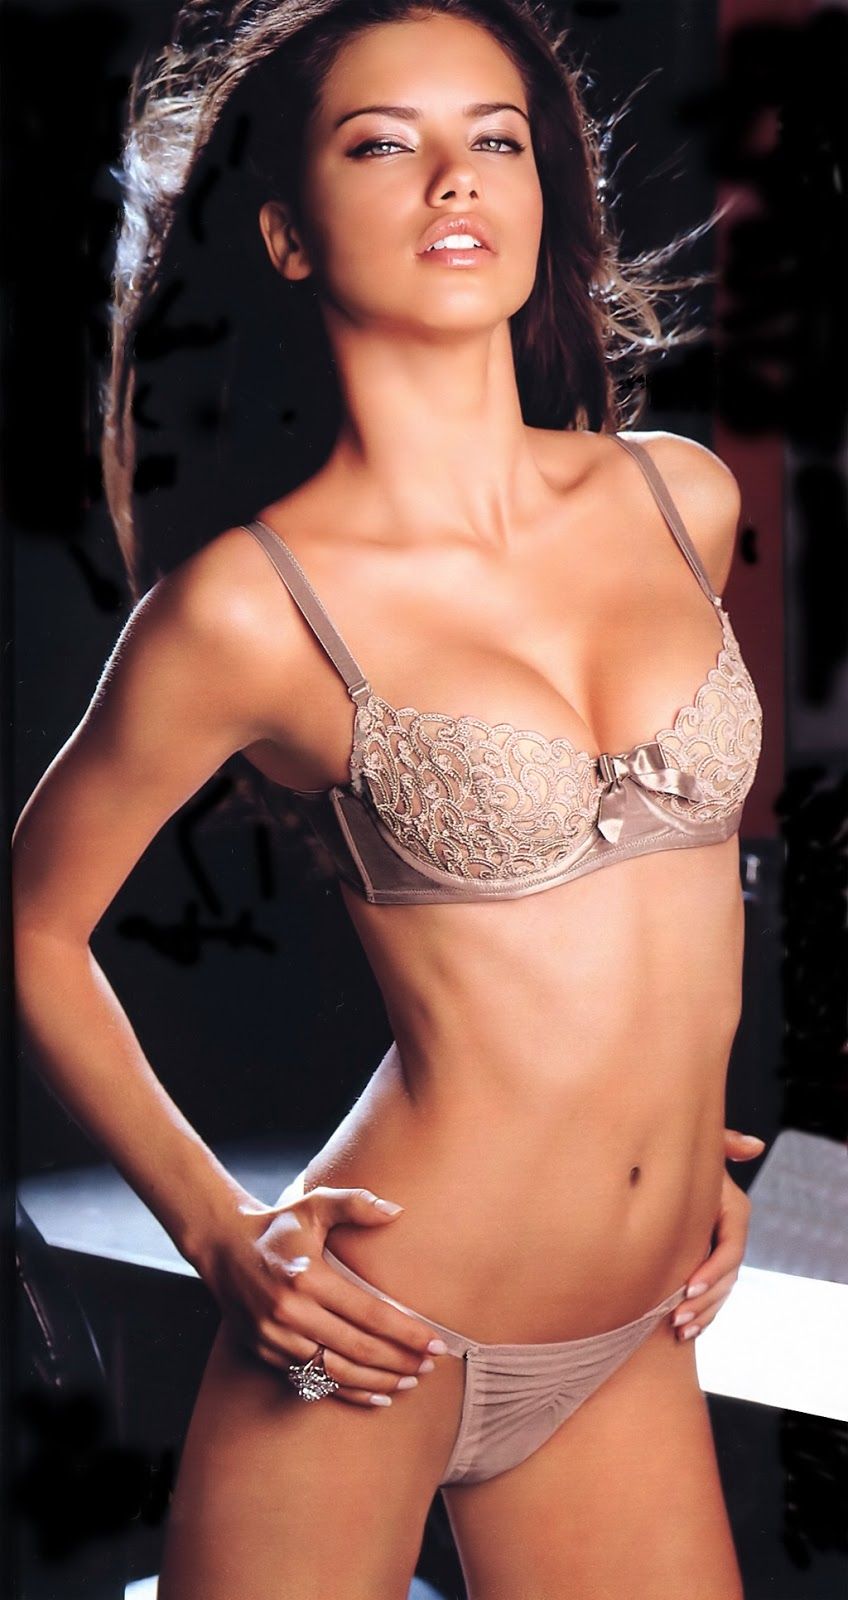 MODEL ADRIANA LIMA BIKINI AMAZING PHOTO